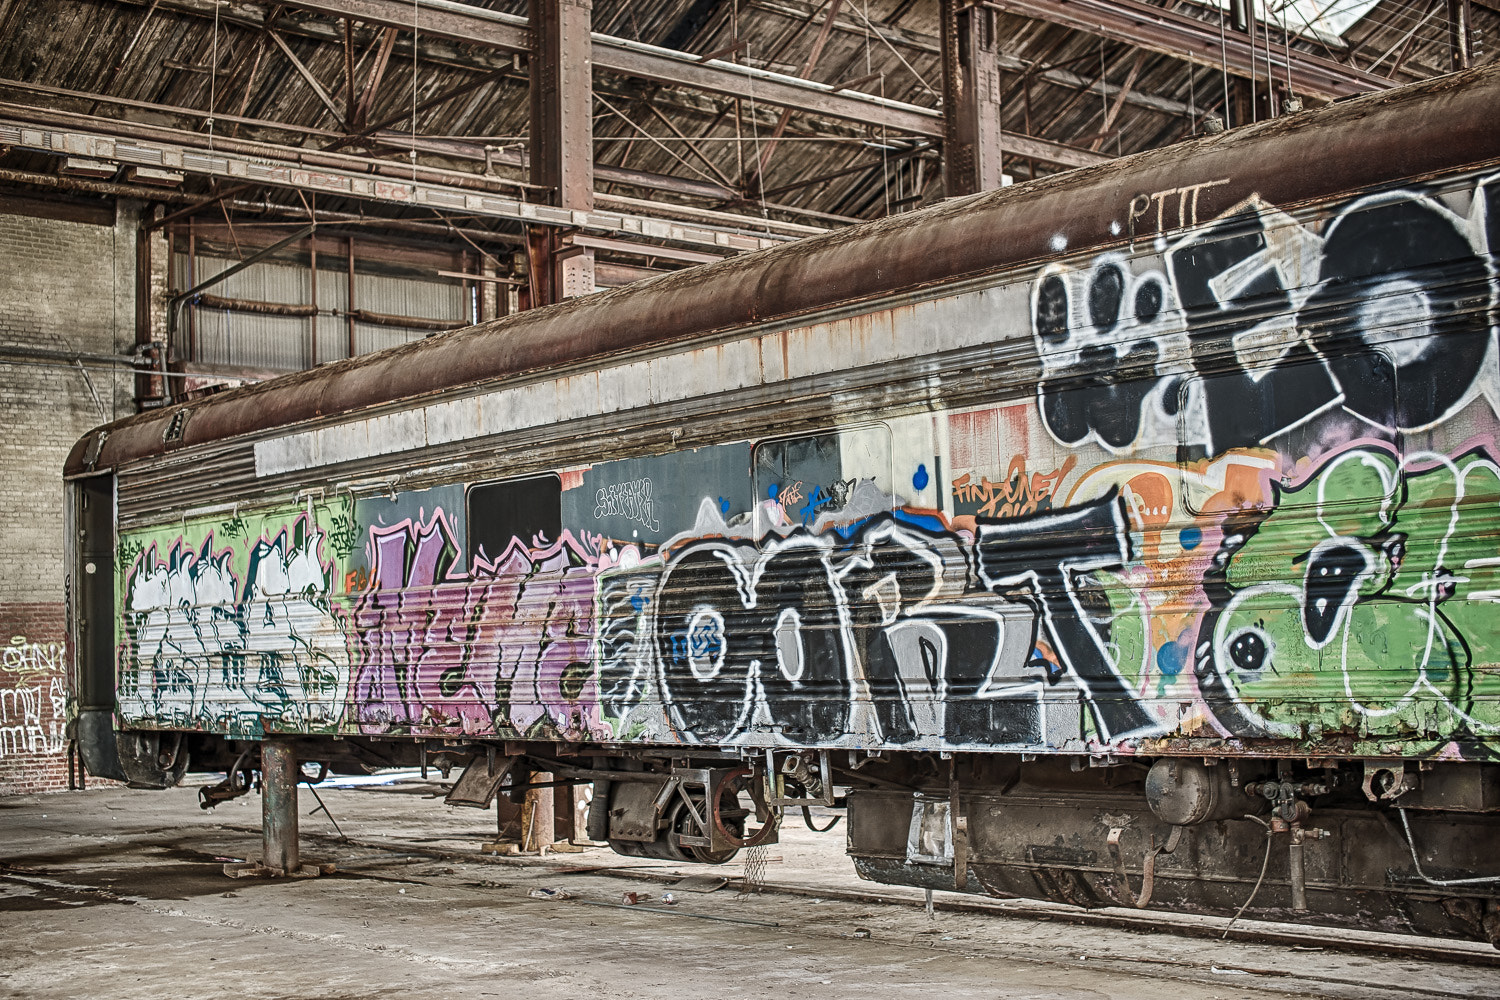 Photograph Urban Art by Paul Todd on 500px